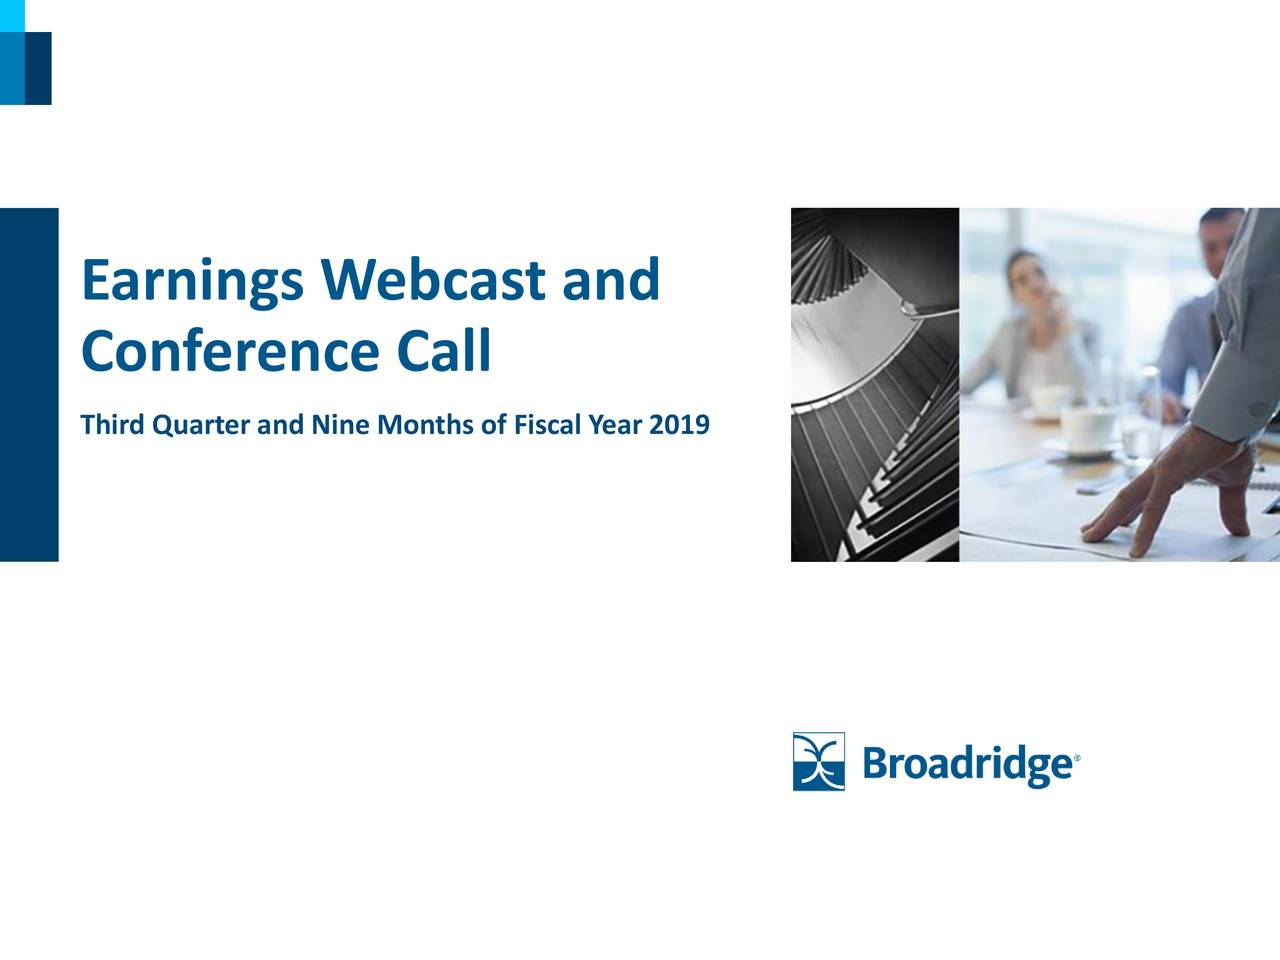 Conference Call Third Quarter and Nine Months of Fiscal Year 2019